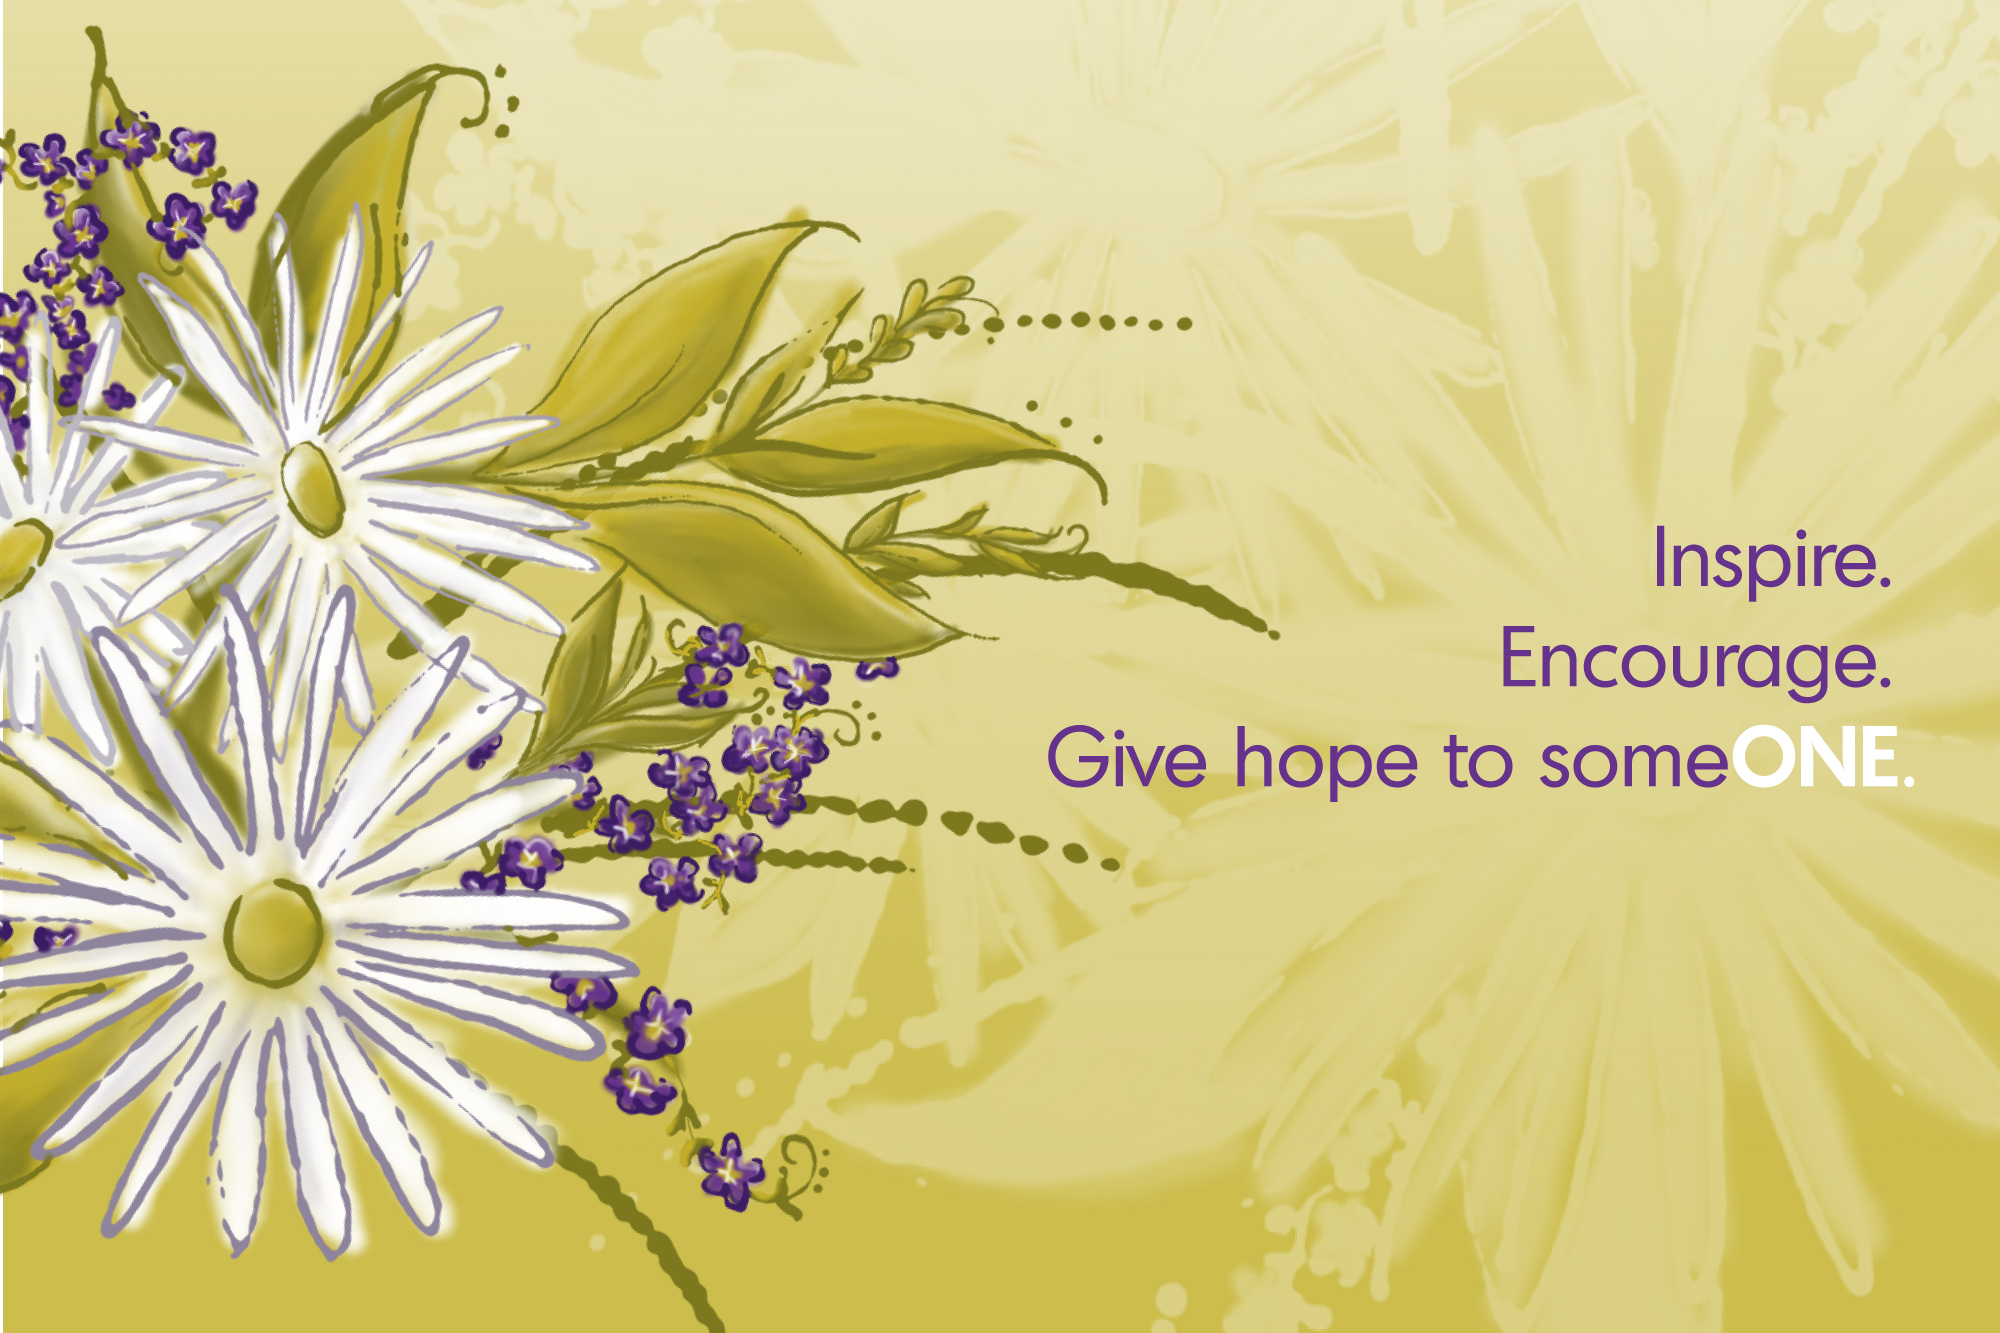 Inspire. Encourage. Give hope to someONE.